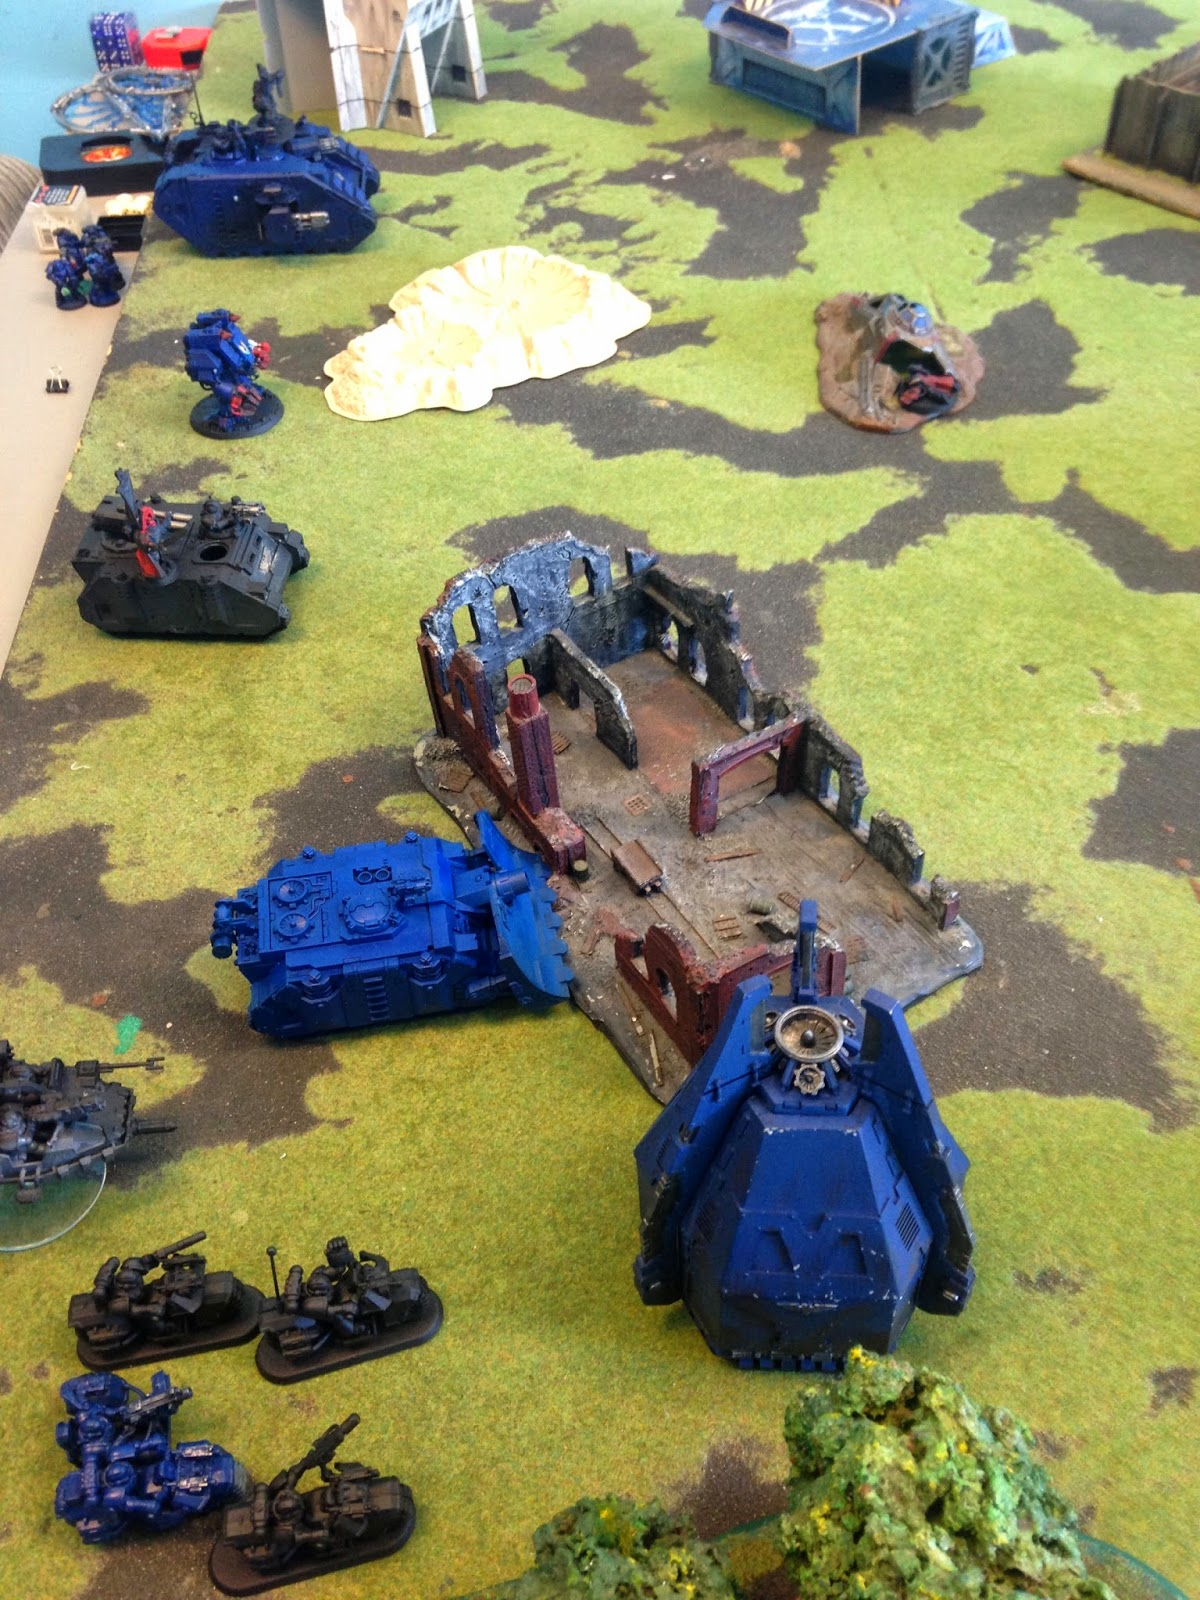 Space Marine Battle, Battle Gaming One, Space Marines vs. Space Marines